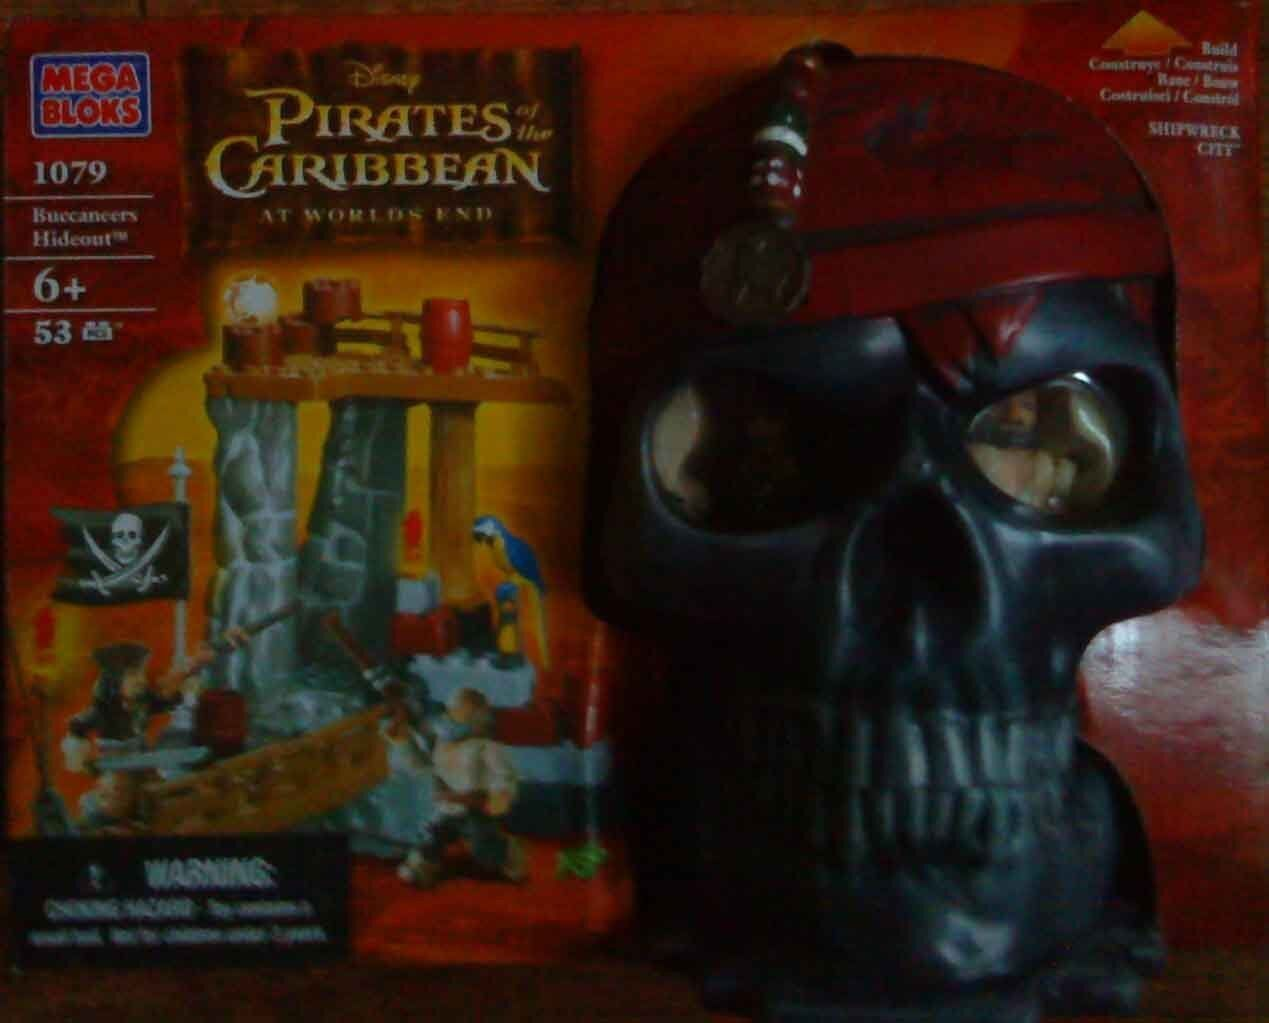 Mega bloks pirates of the caribbean at worlds end - buccanners hideout